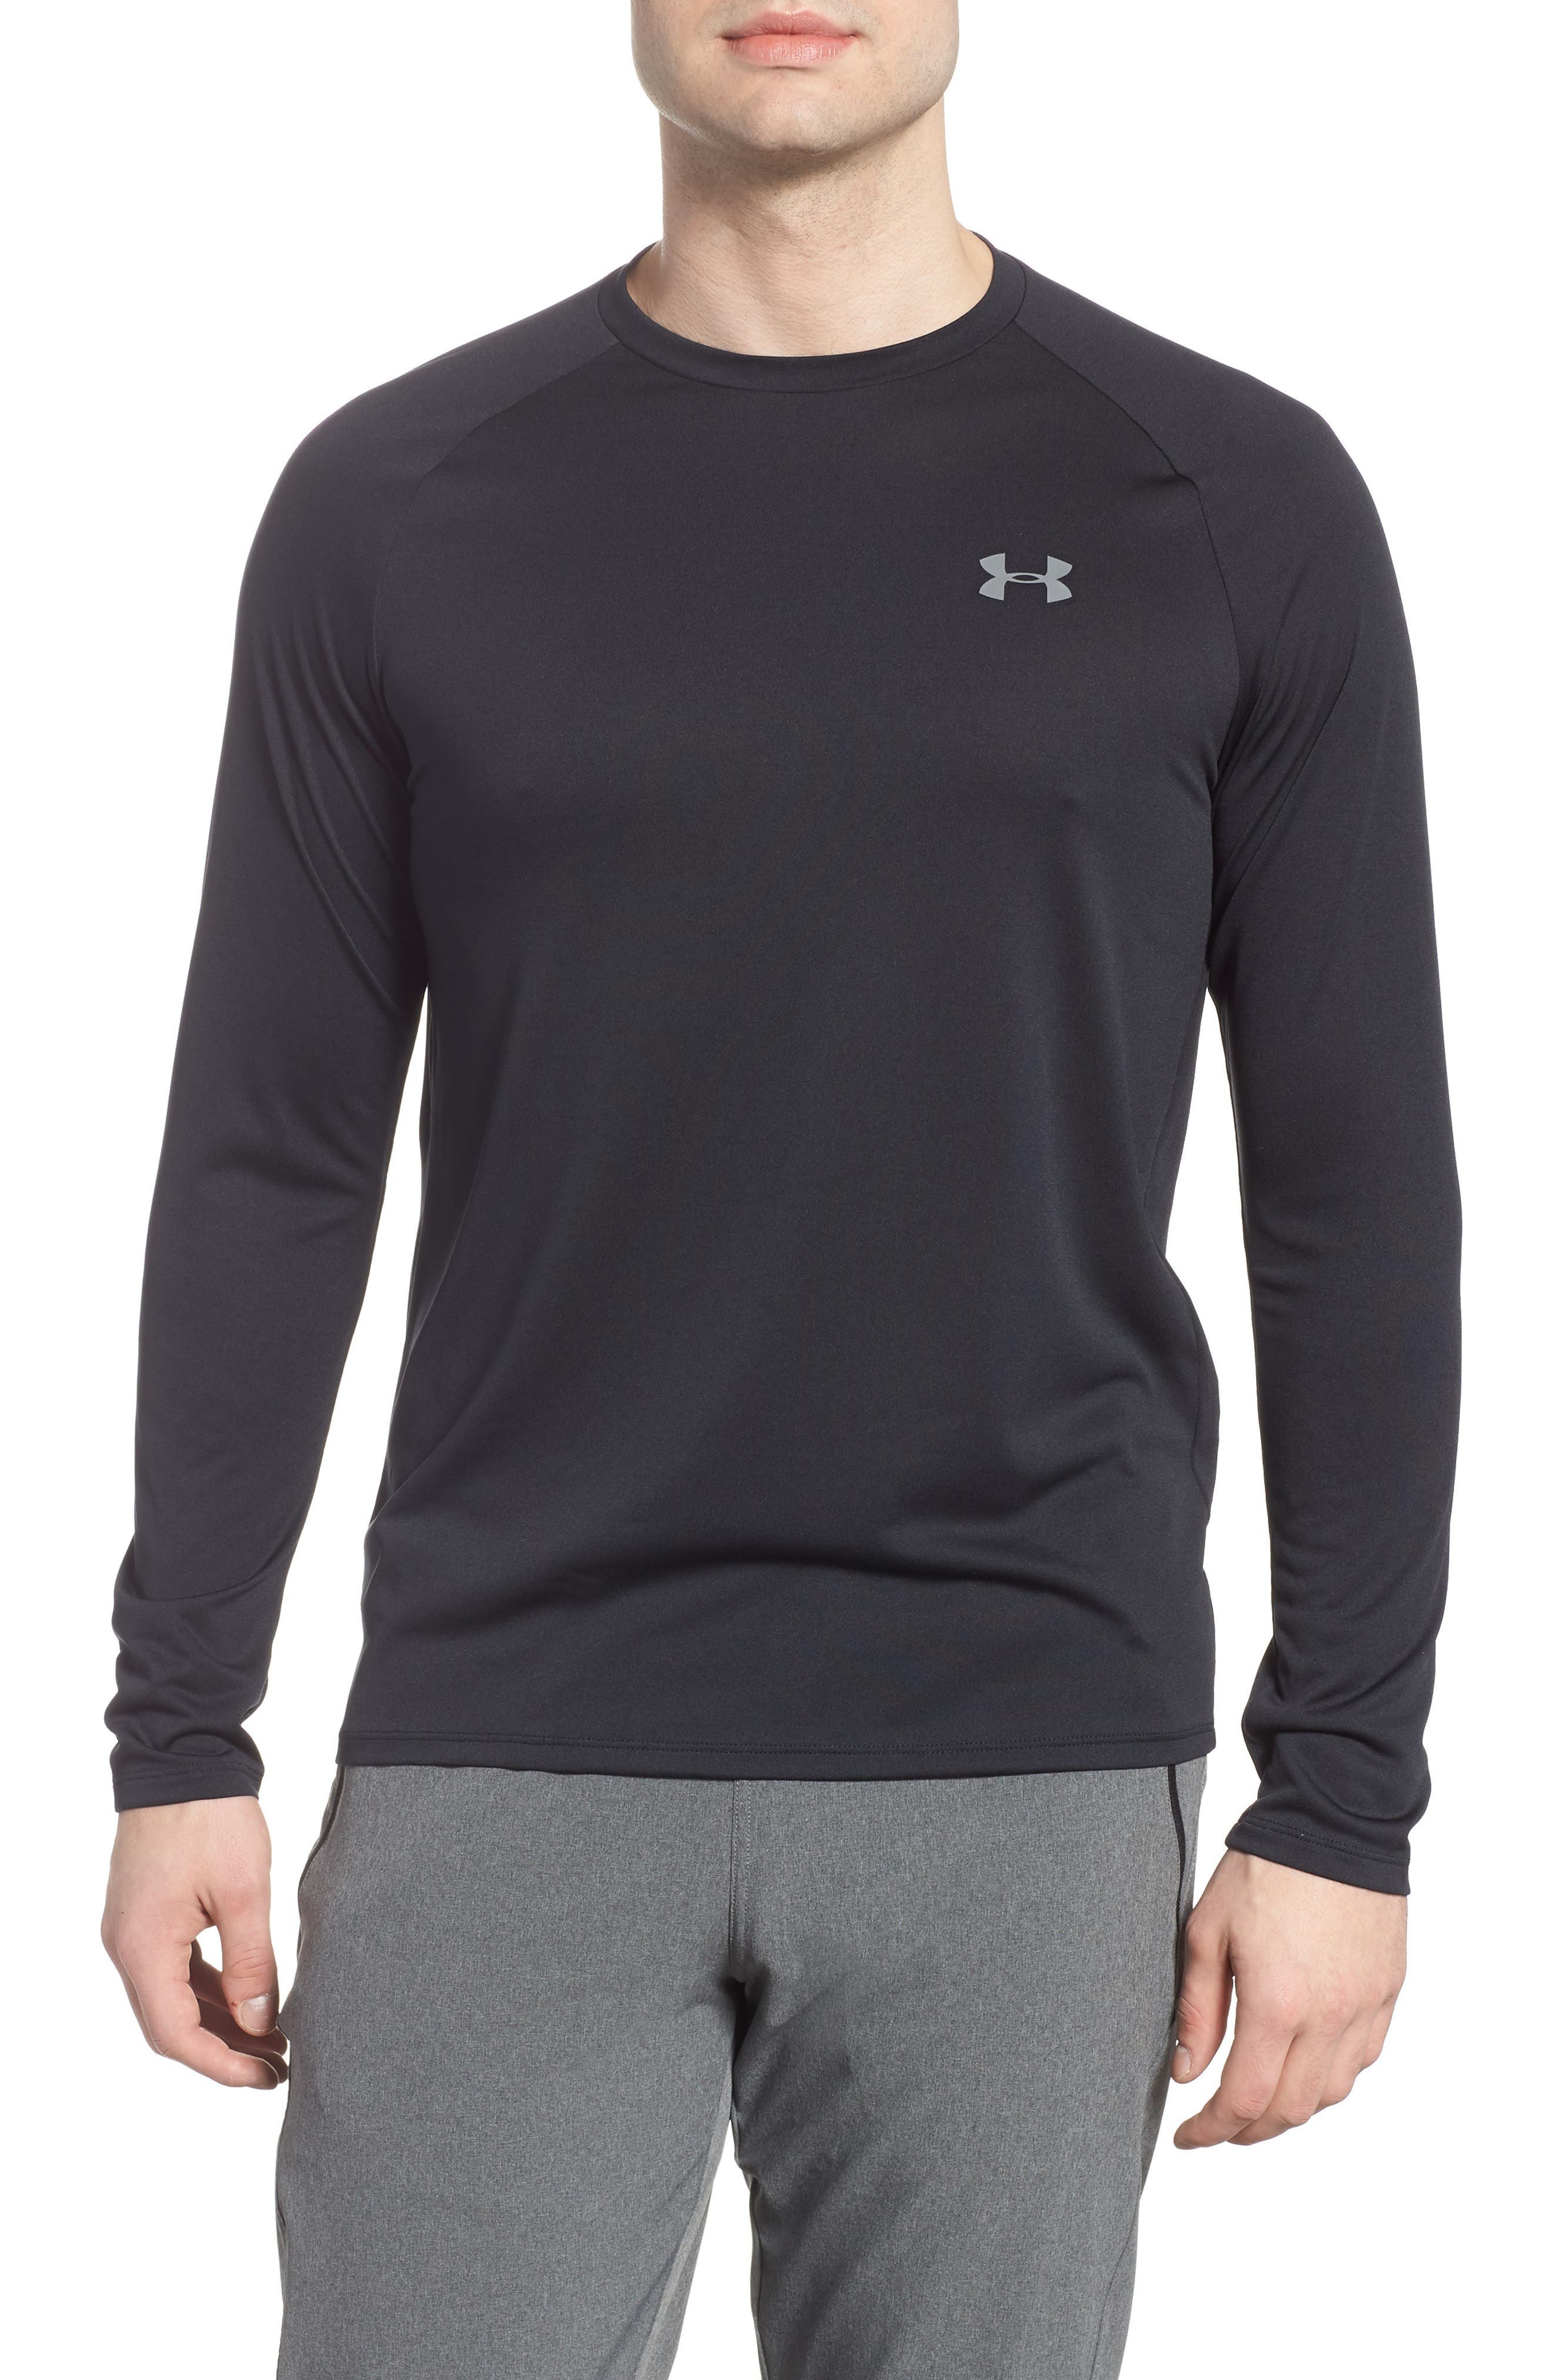 Performance Tech Long Sleeve Shirt,                         Main,                         color, BLACK/ STEEL